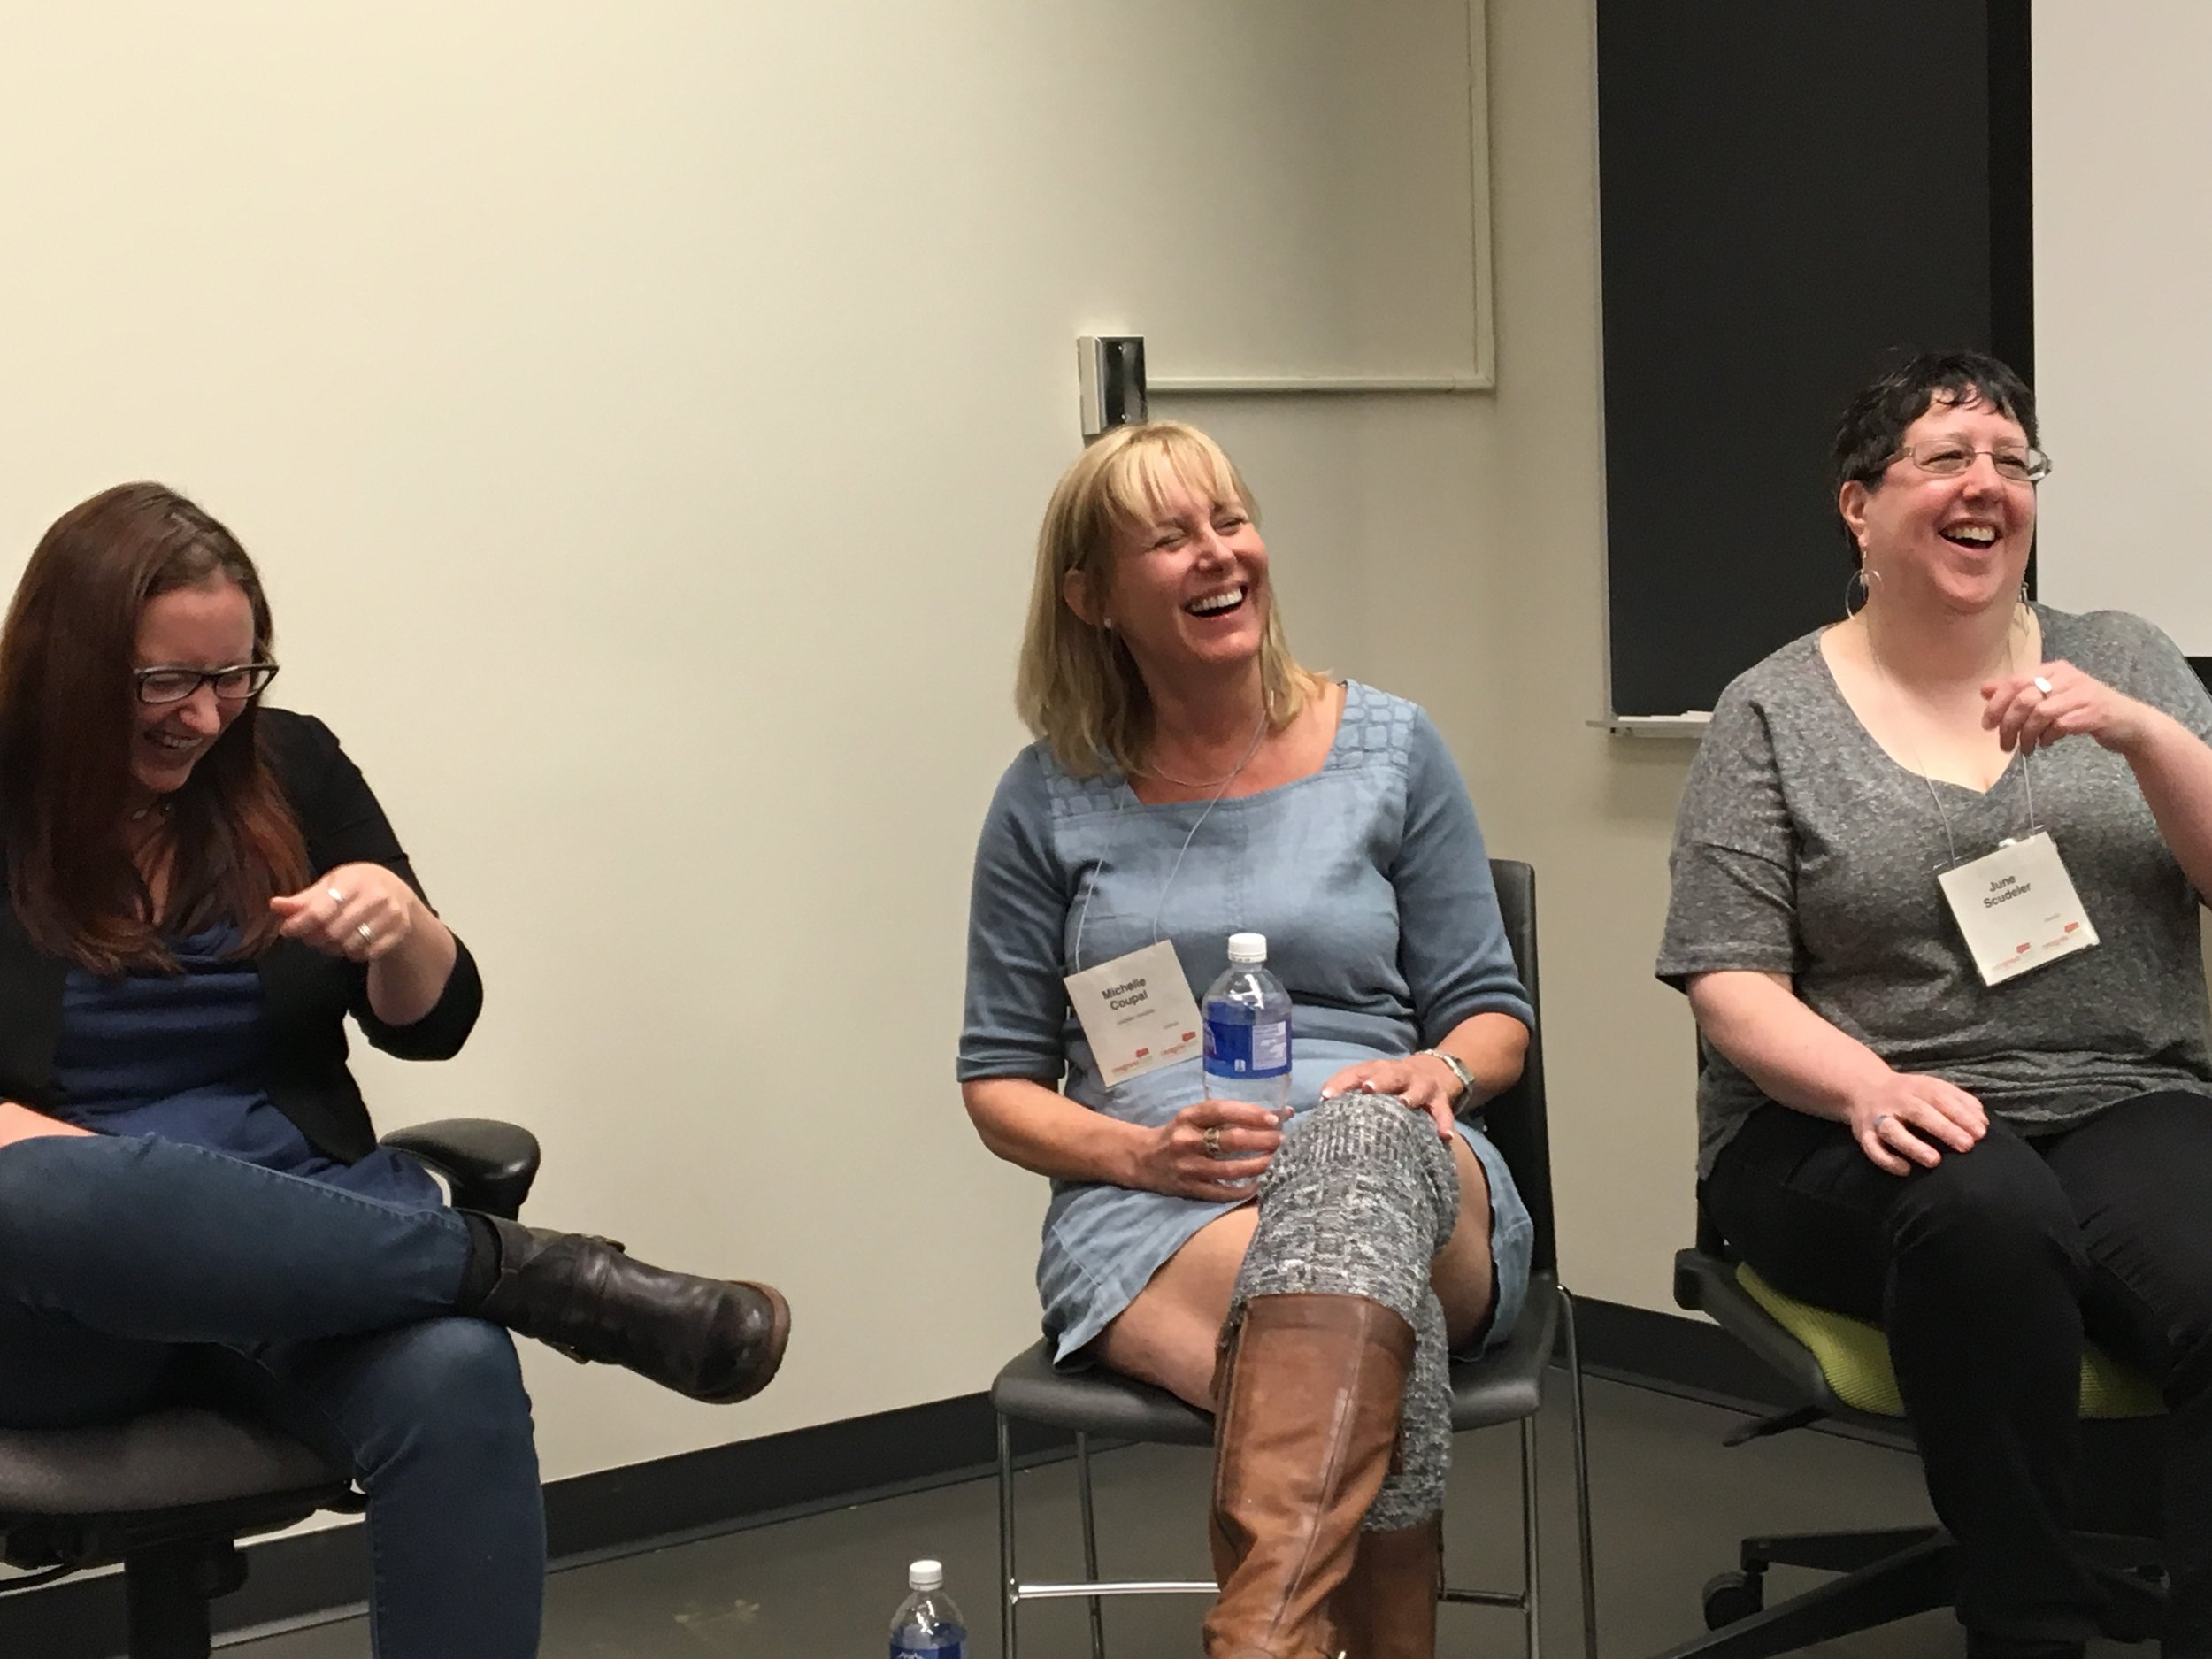 Natalie Knight, Michelle Coupal, and June Scudeler can't stop laughing!